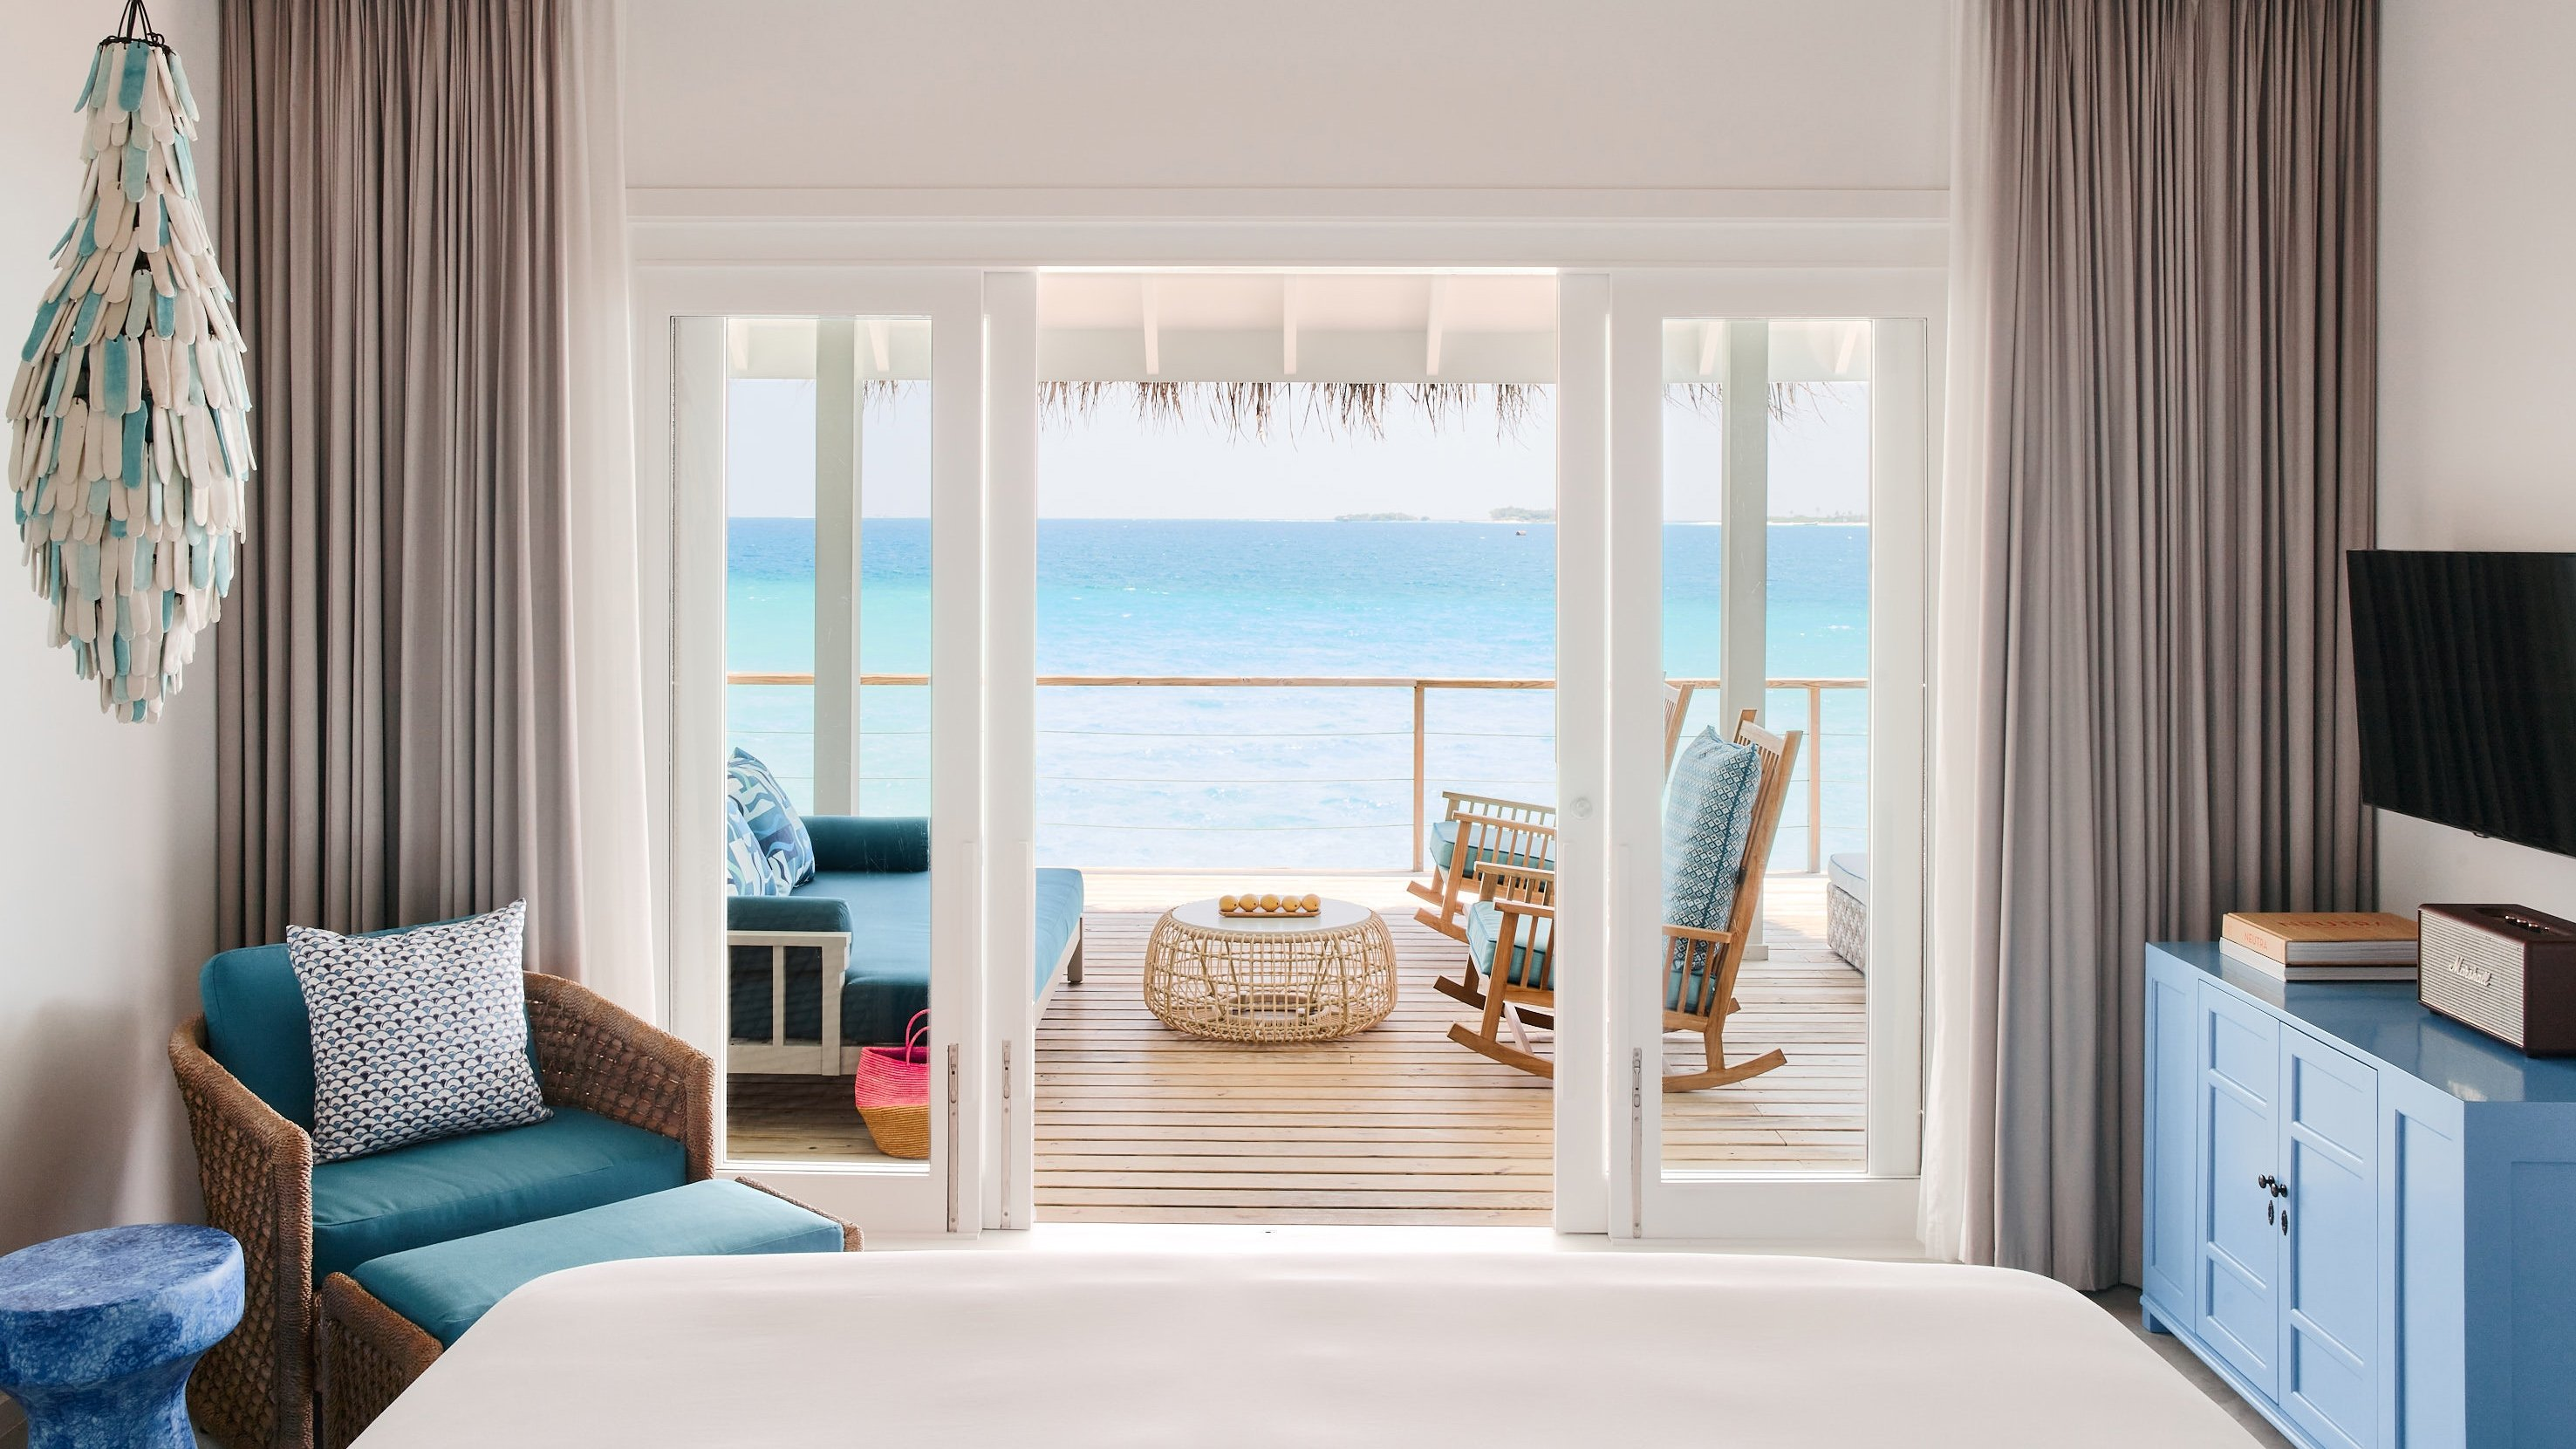 Water villas not only allow immediate access to the sea but also makes sure you start your every day with such views. (Photo courtesy of Finohlu Maldives)